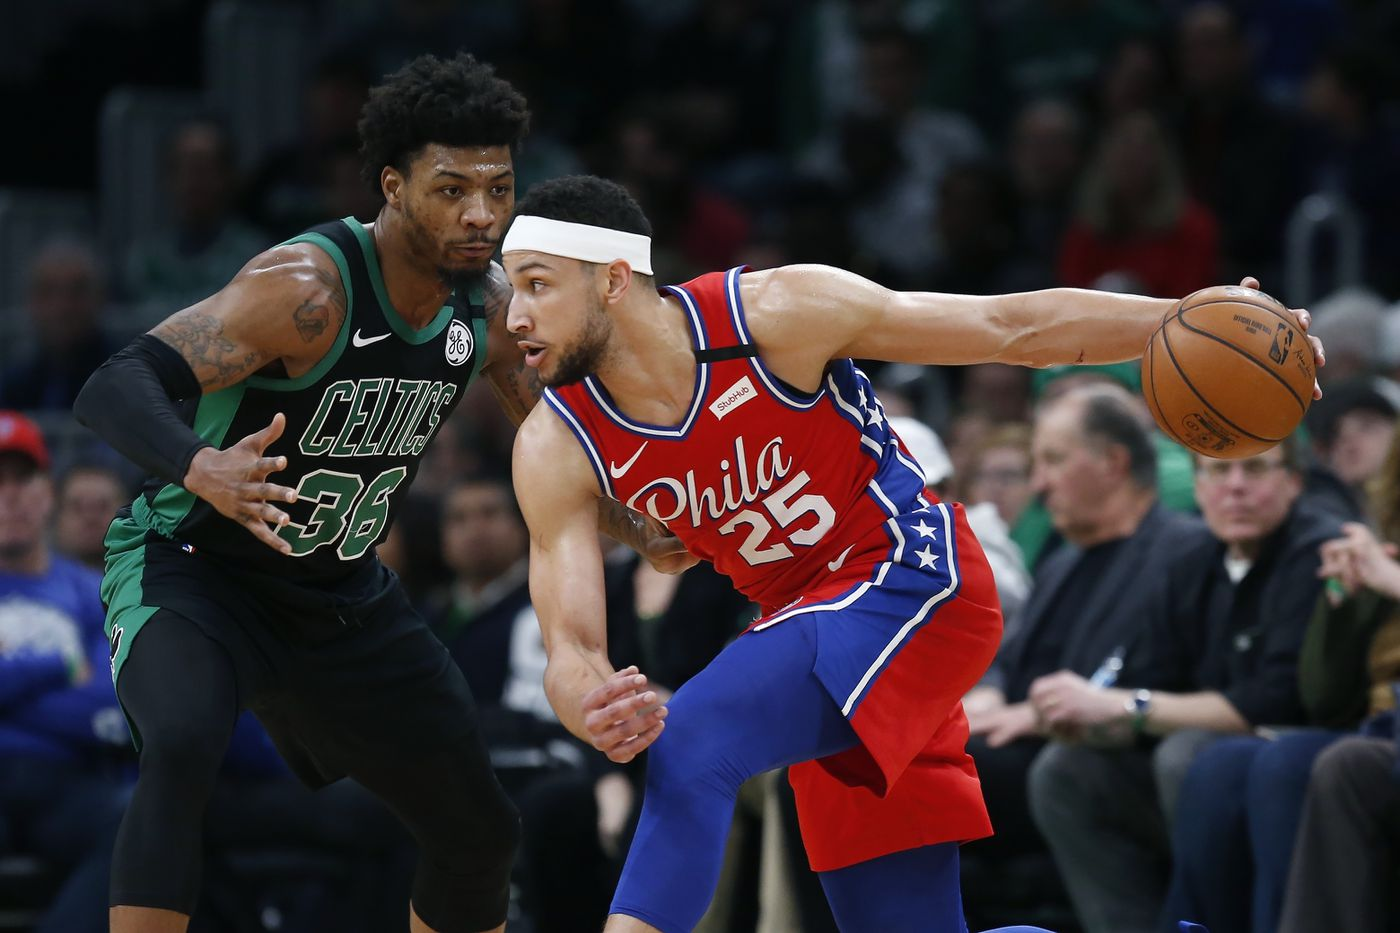 76ers guard Ben Simmons (25) tries to drive against Boston's Marcus Smart during the first quarter.